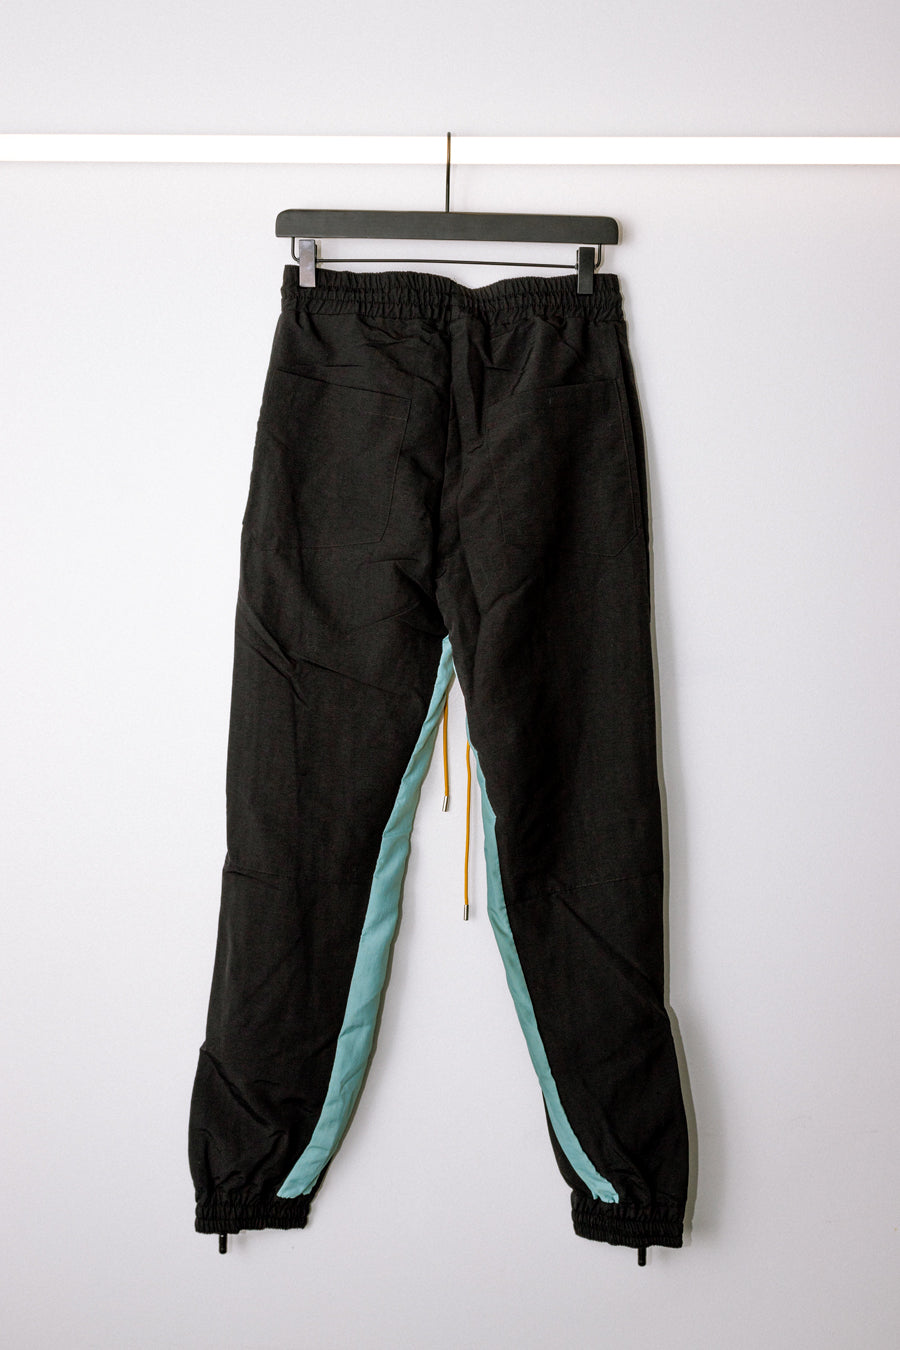 Rhude - Black & Teal Flight Pants